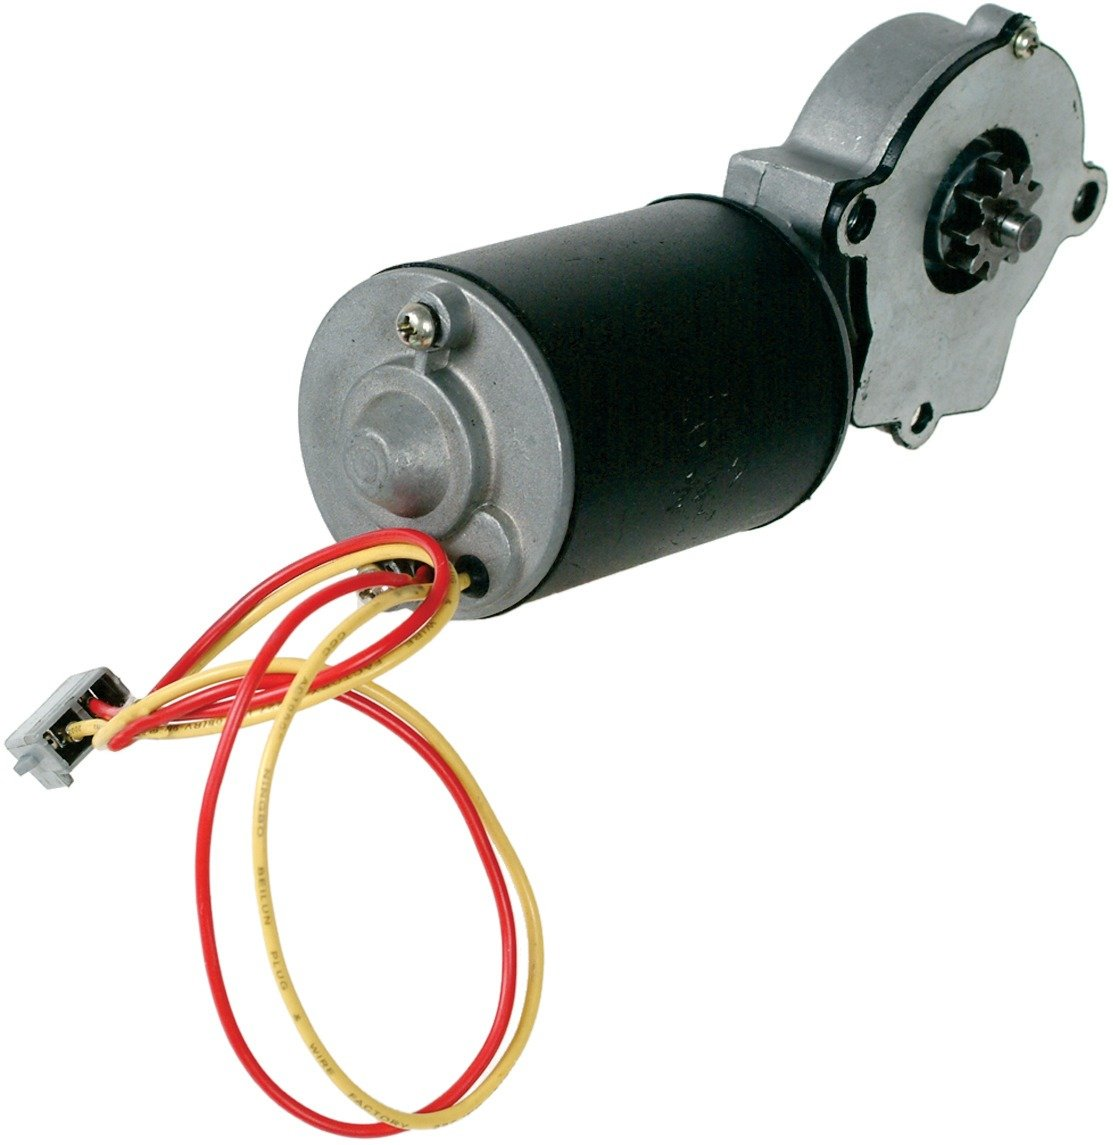 Cardone Select 82-31 New Window Lift Motor